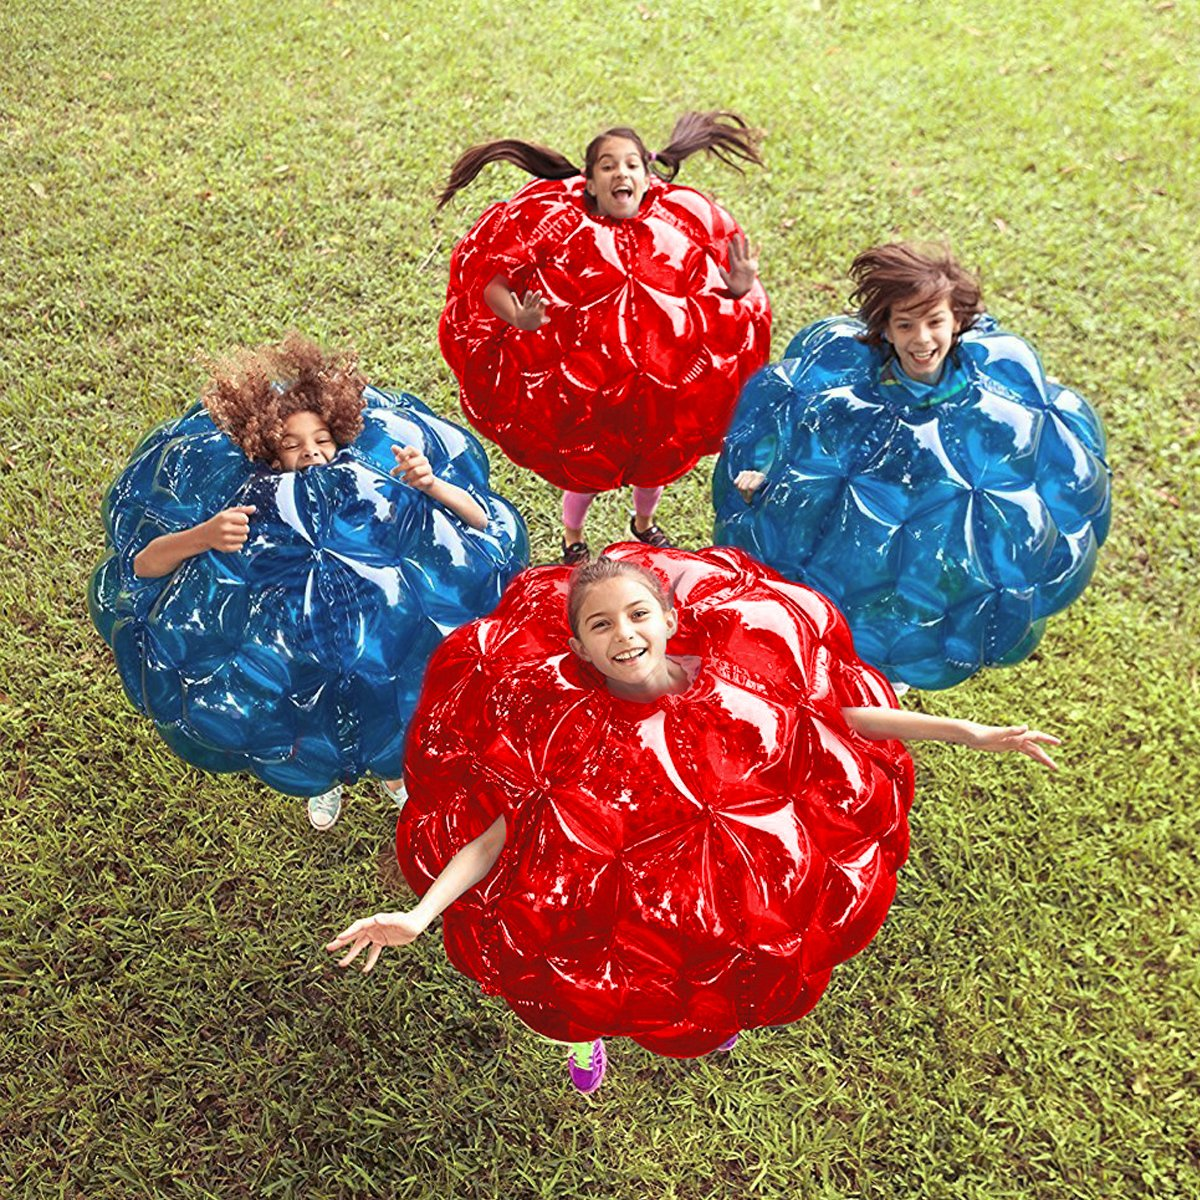 Inflatable 36'' Wearable Buddy Bumper Zorb Balls Heavy Duty Durable PVC Viny Bubble Soccer Outdoor Game (2-Pack,Blue&Red)) ... by Holleyweb (Image #7)